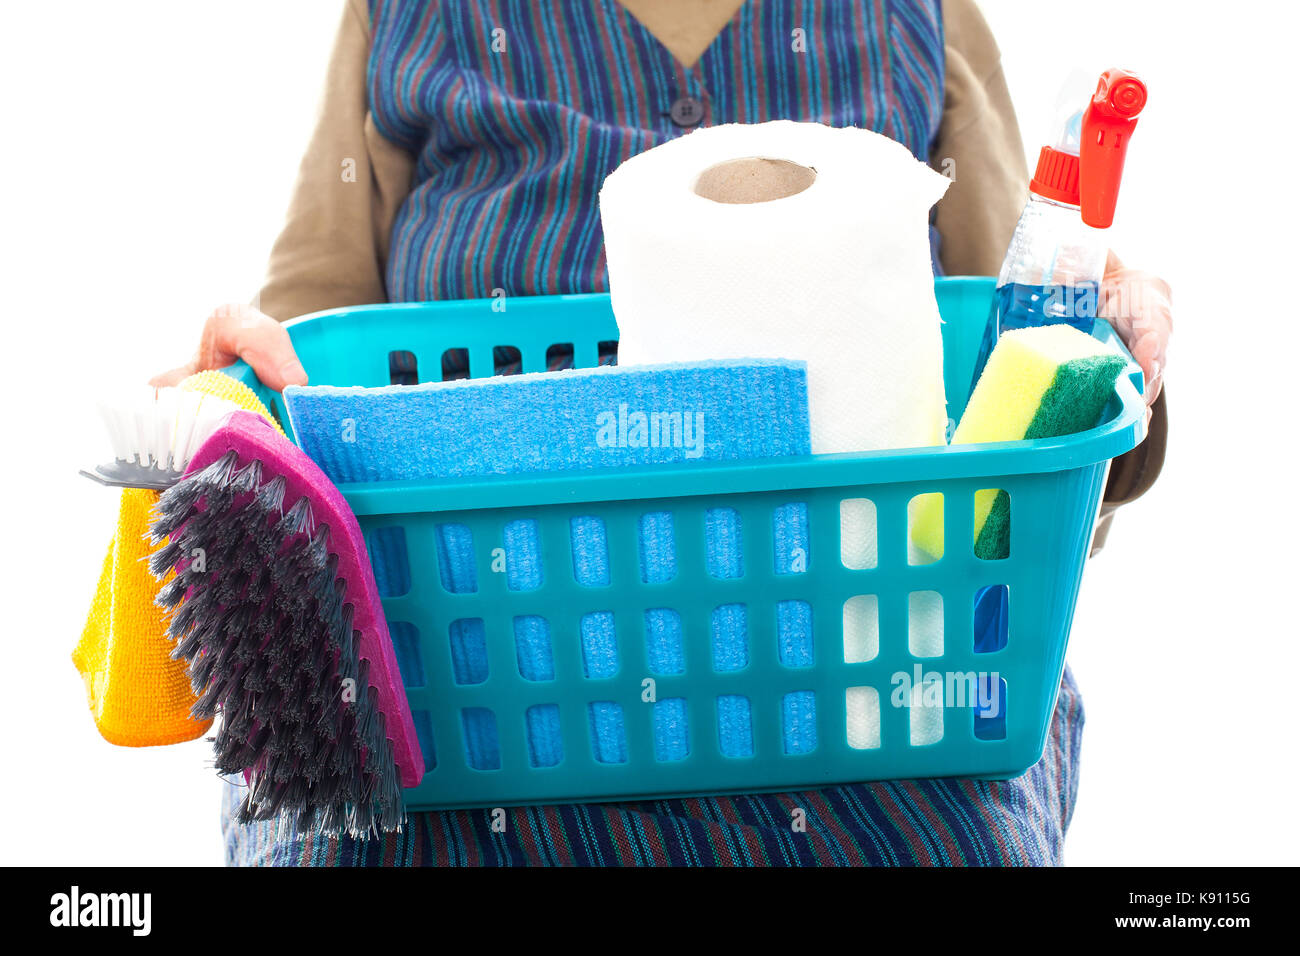 Close up of a senior lady doing housework holding cleaning equipment - Stock Image